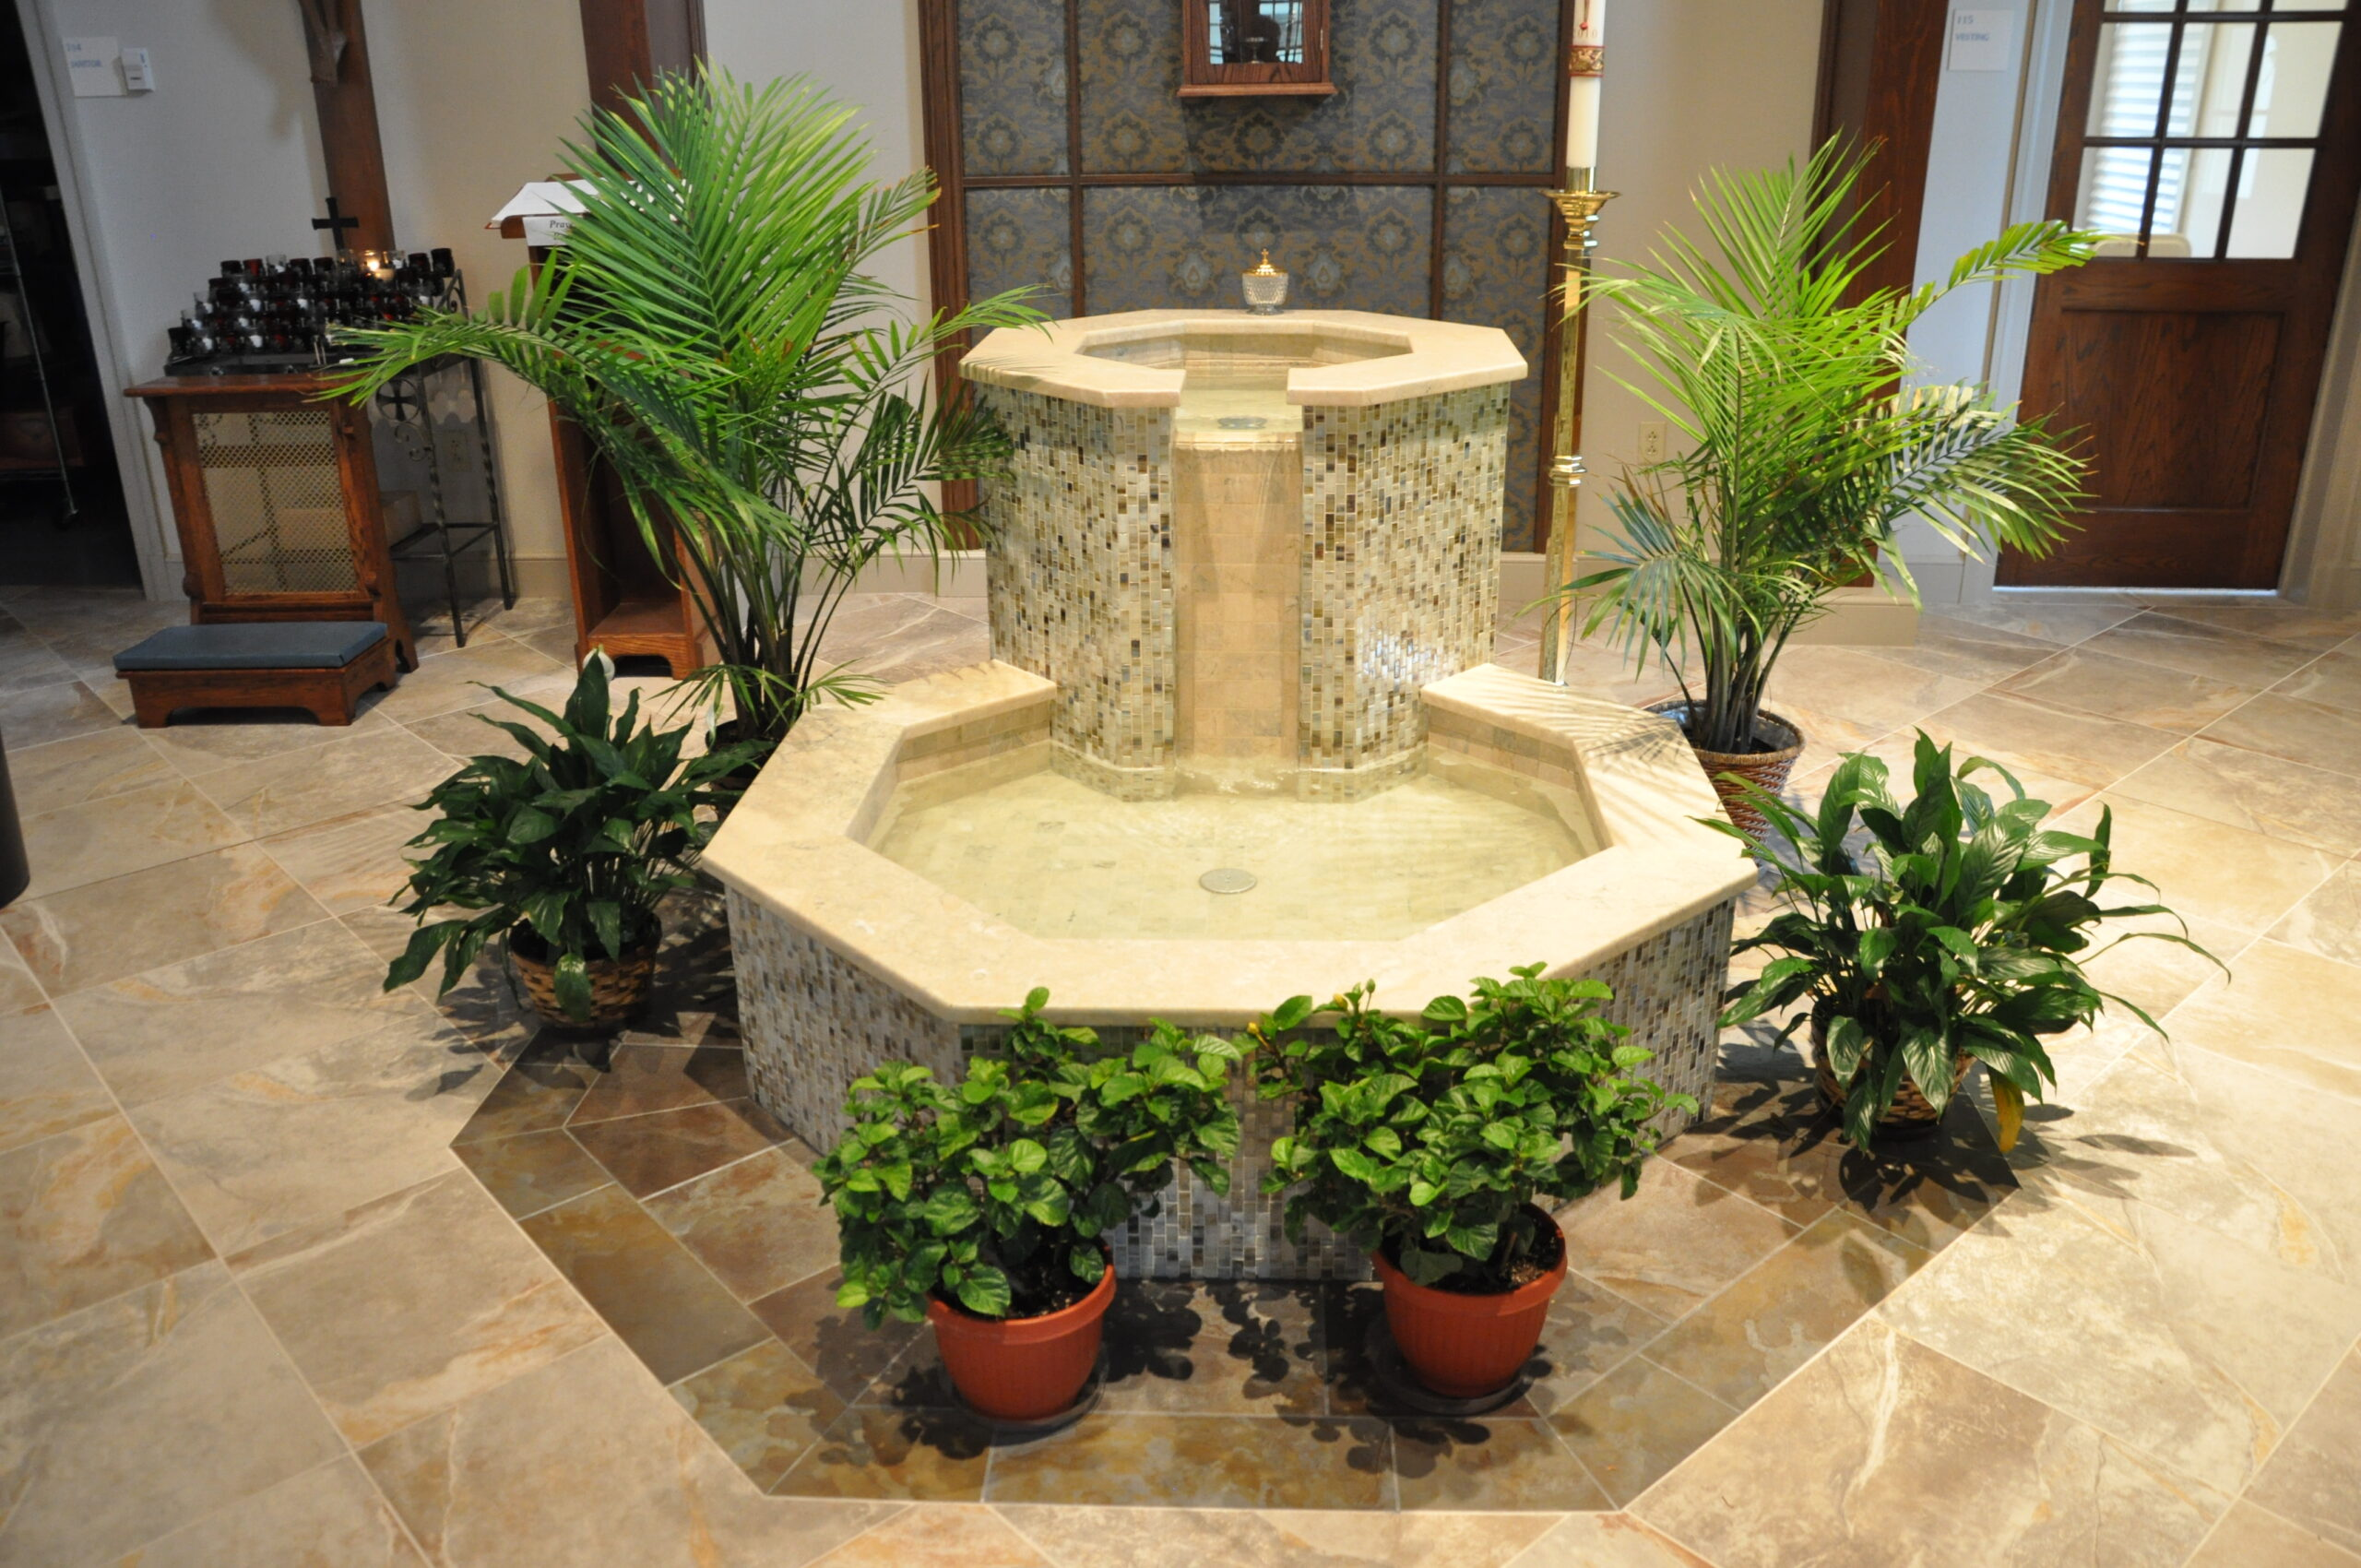 baptismal-font-our-lady-of-the-blessed-westfield-ma-by-water-structures